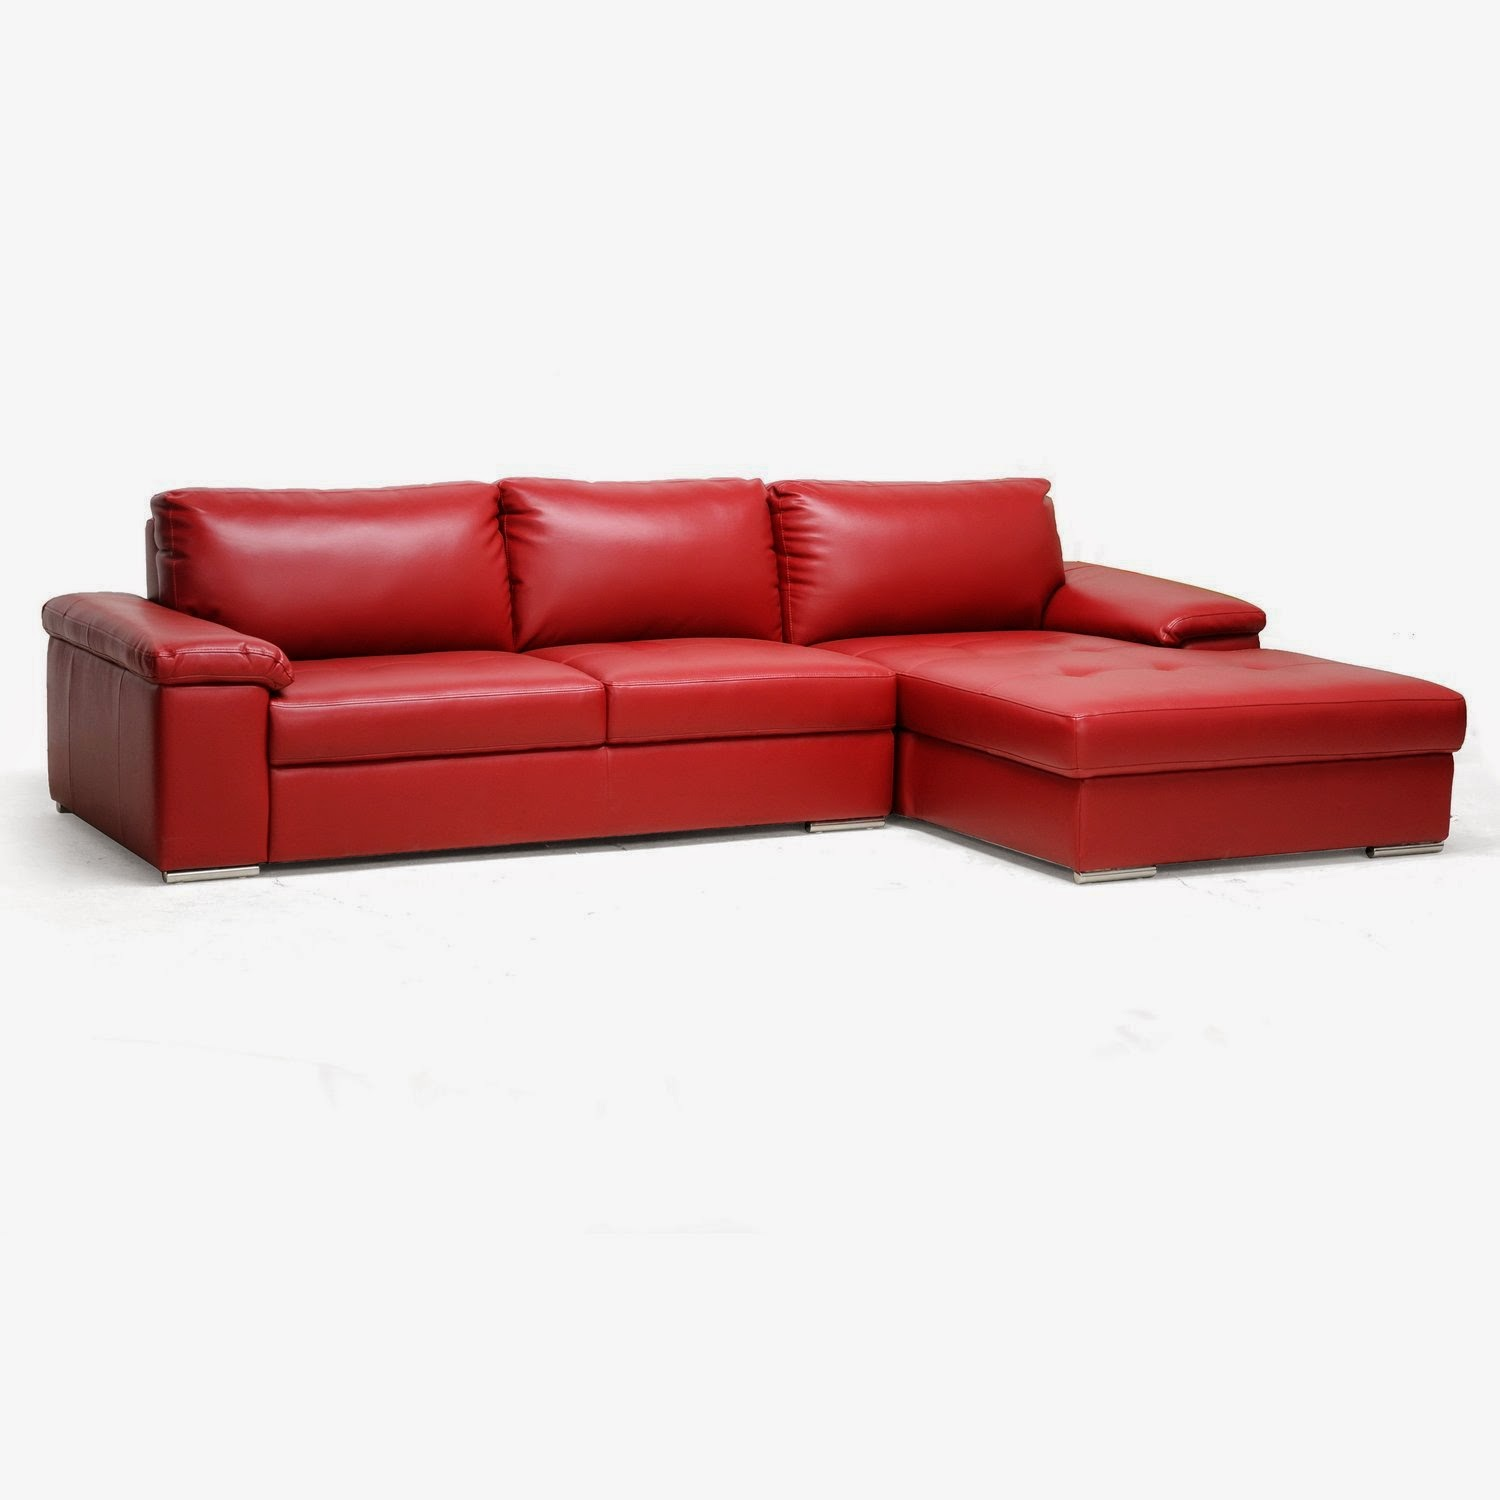 Red couch red leather sectional couch for Sectional couch